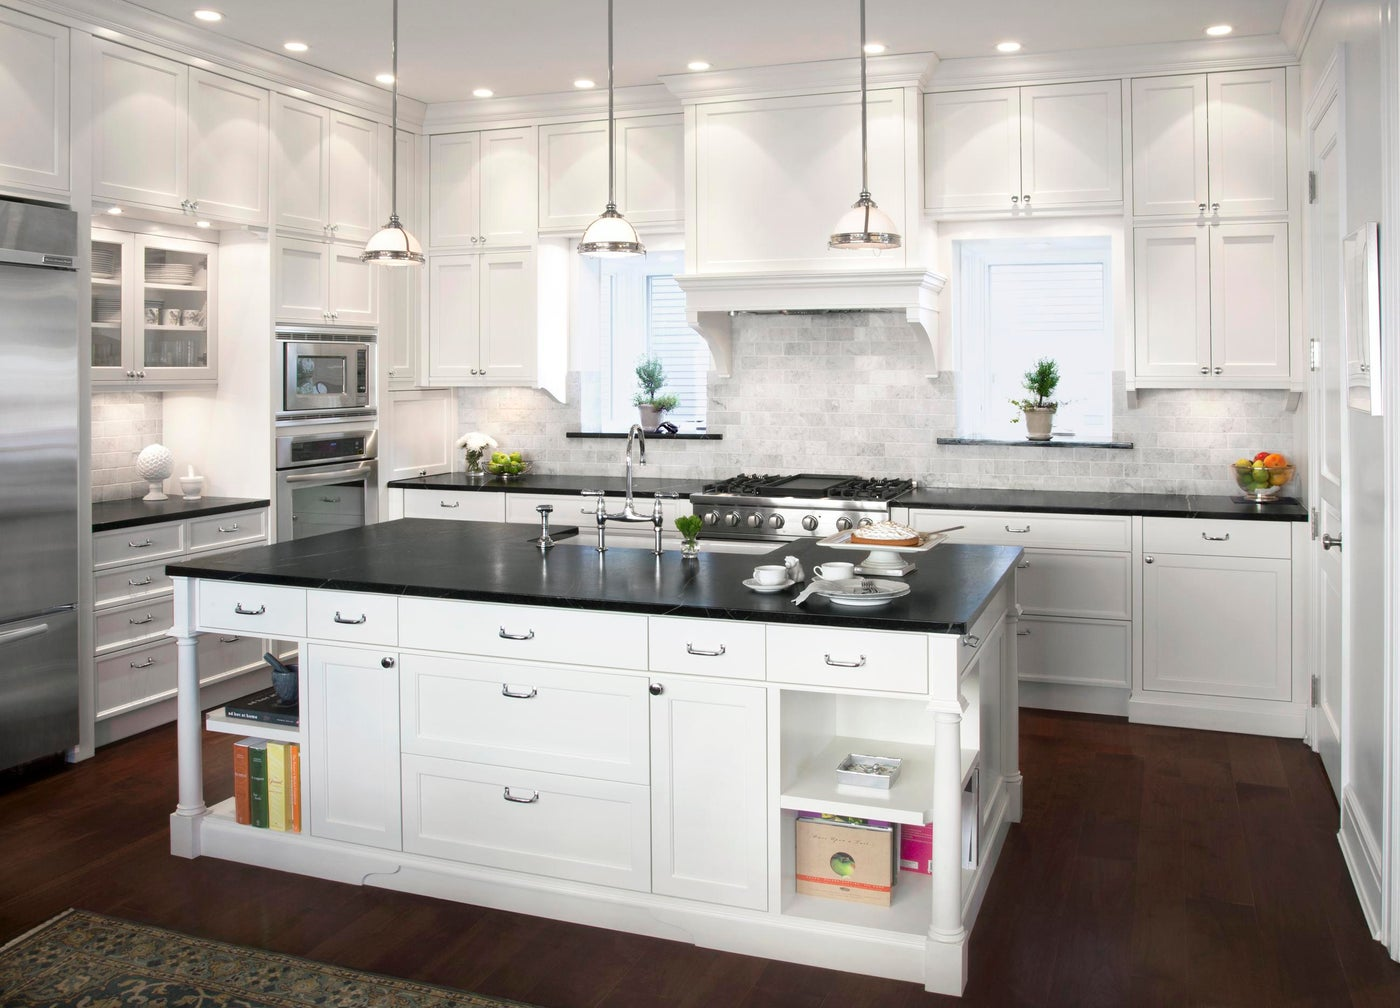 Traditional English Kitchen with Soapstone Counters and Marble Backsplash